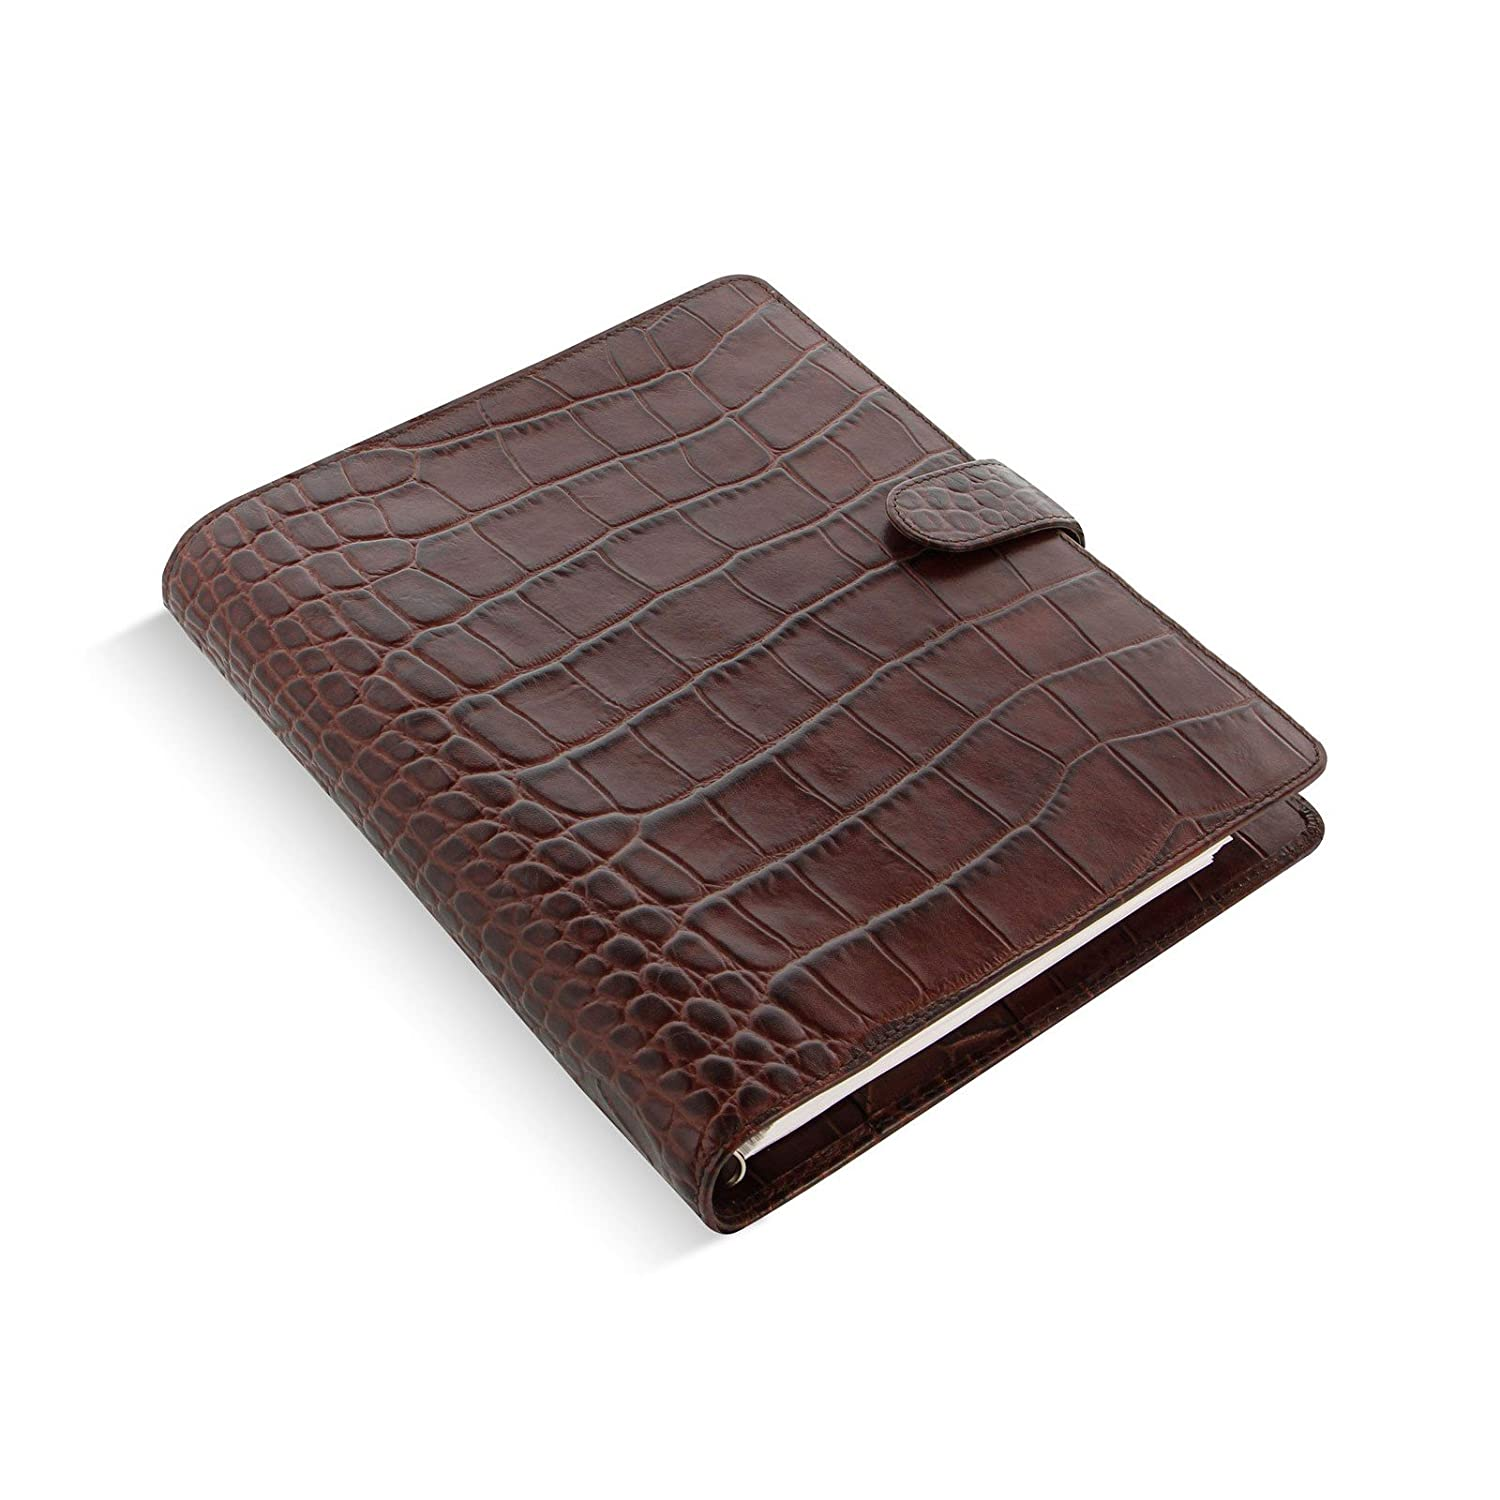 Filofax Classic Croc Print Leather Organizer Agenda Calendar A5 Size in Chestnut Brown with DiLoro Jot Pad Refills (A5, Chestnut 2017, 026017)